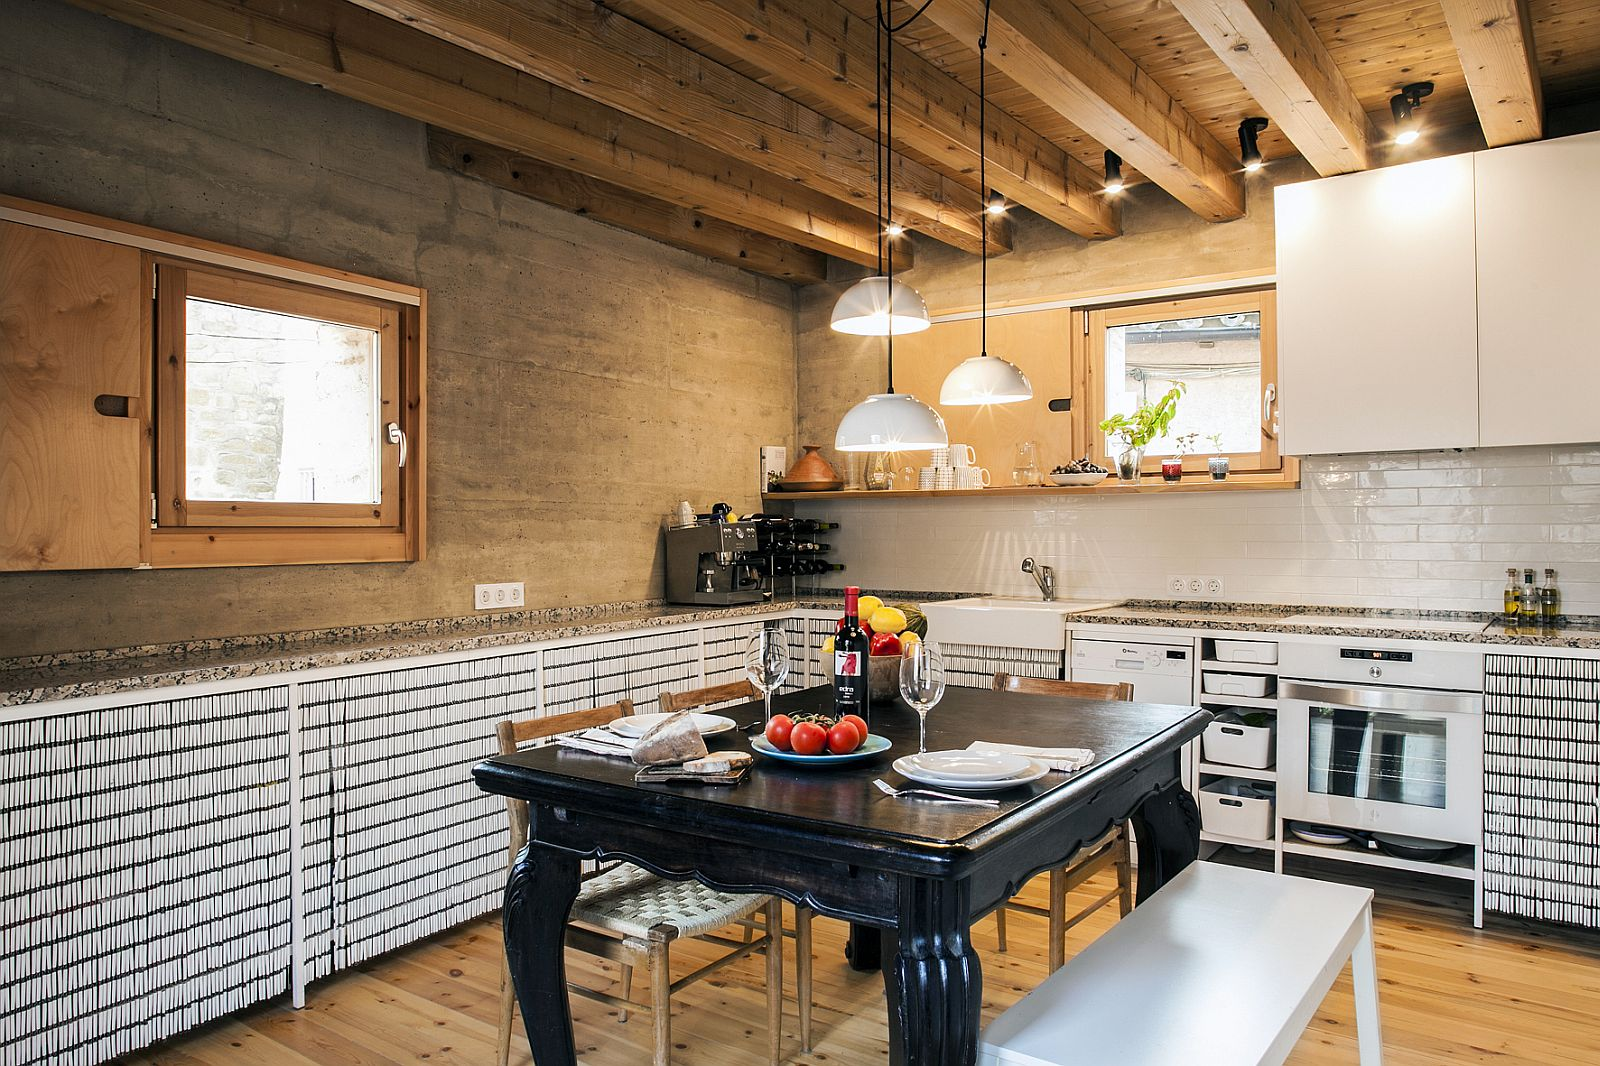 Modern rustic kitchen design with a beuatiful central table